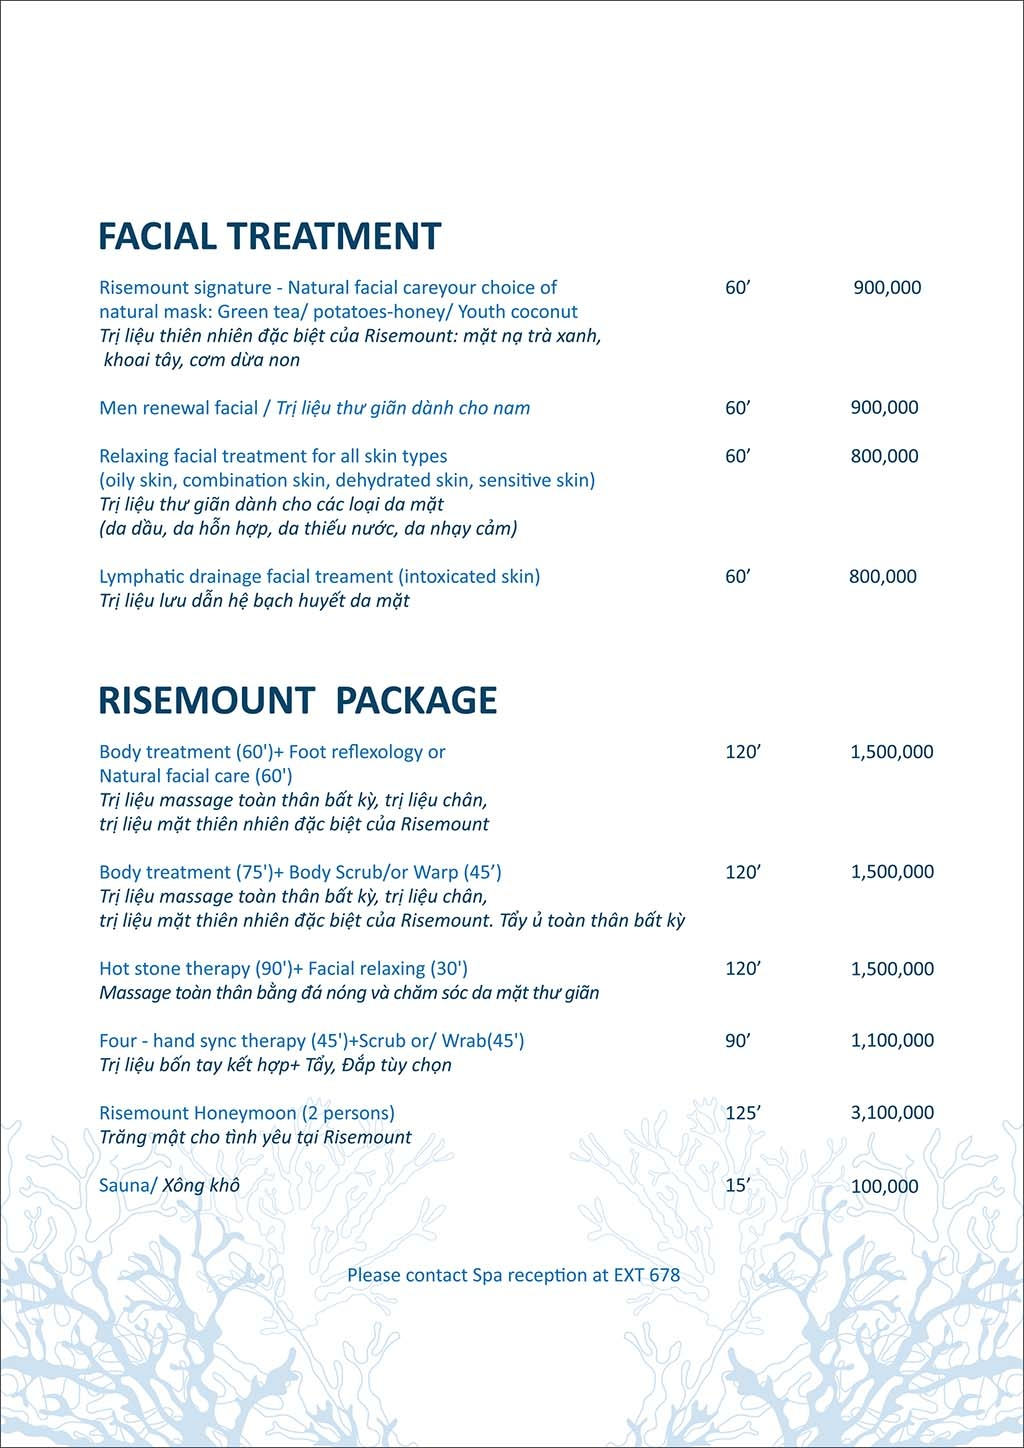 Risemount Resort – 20% discount for spa packages33